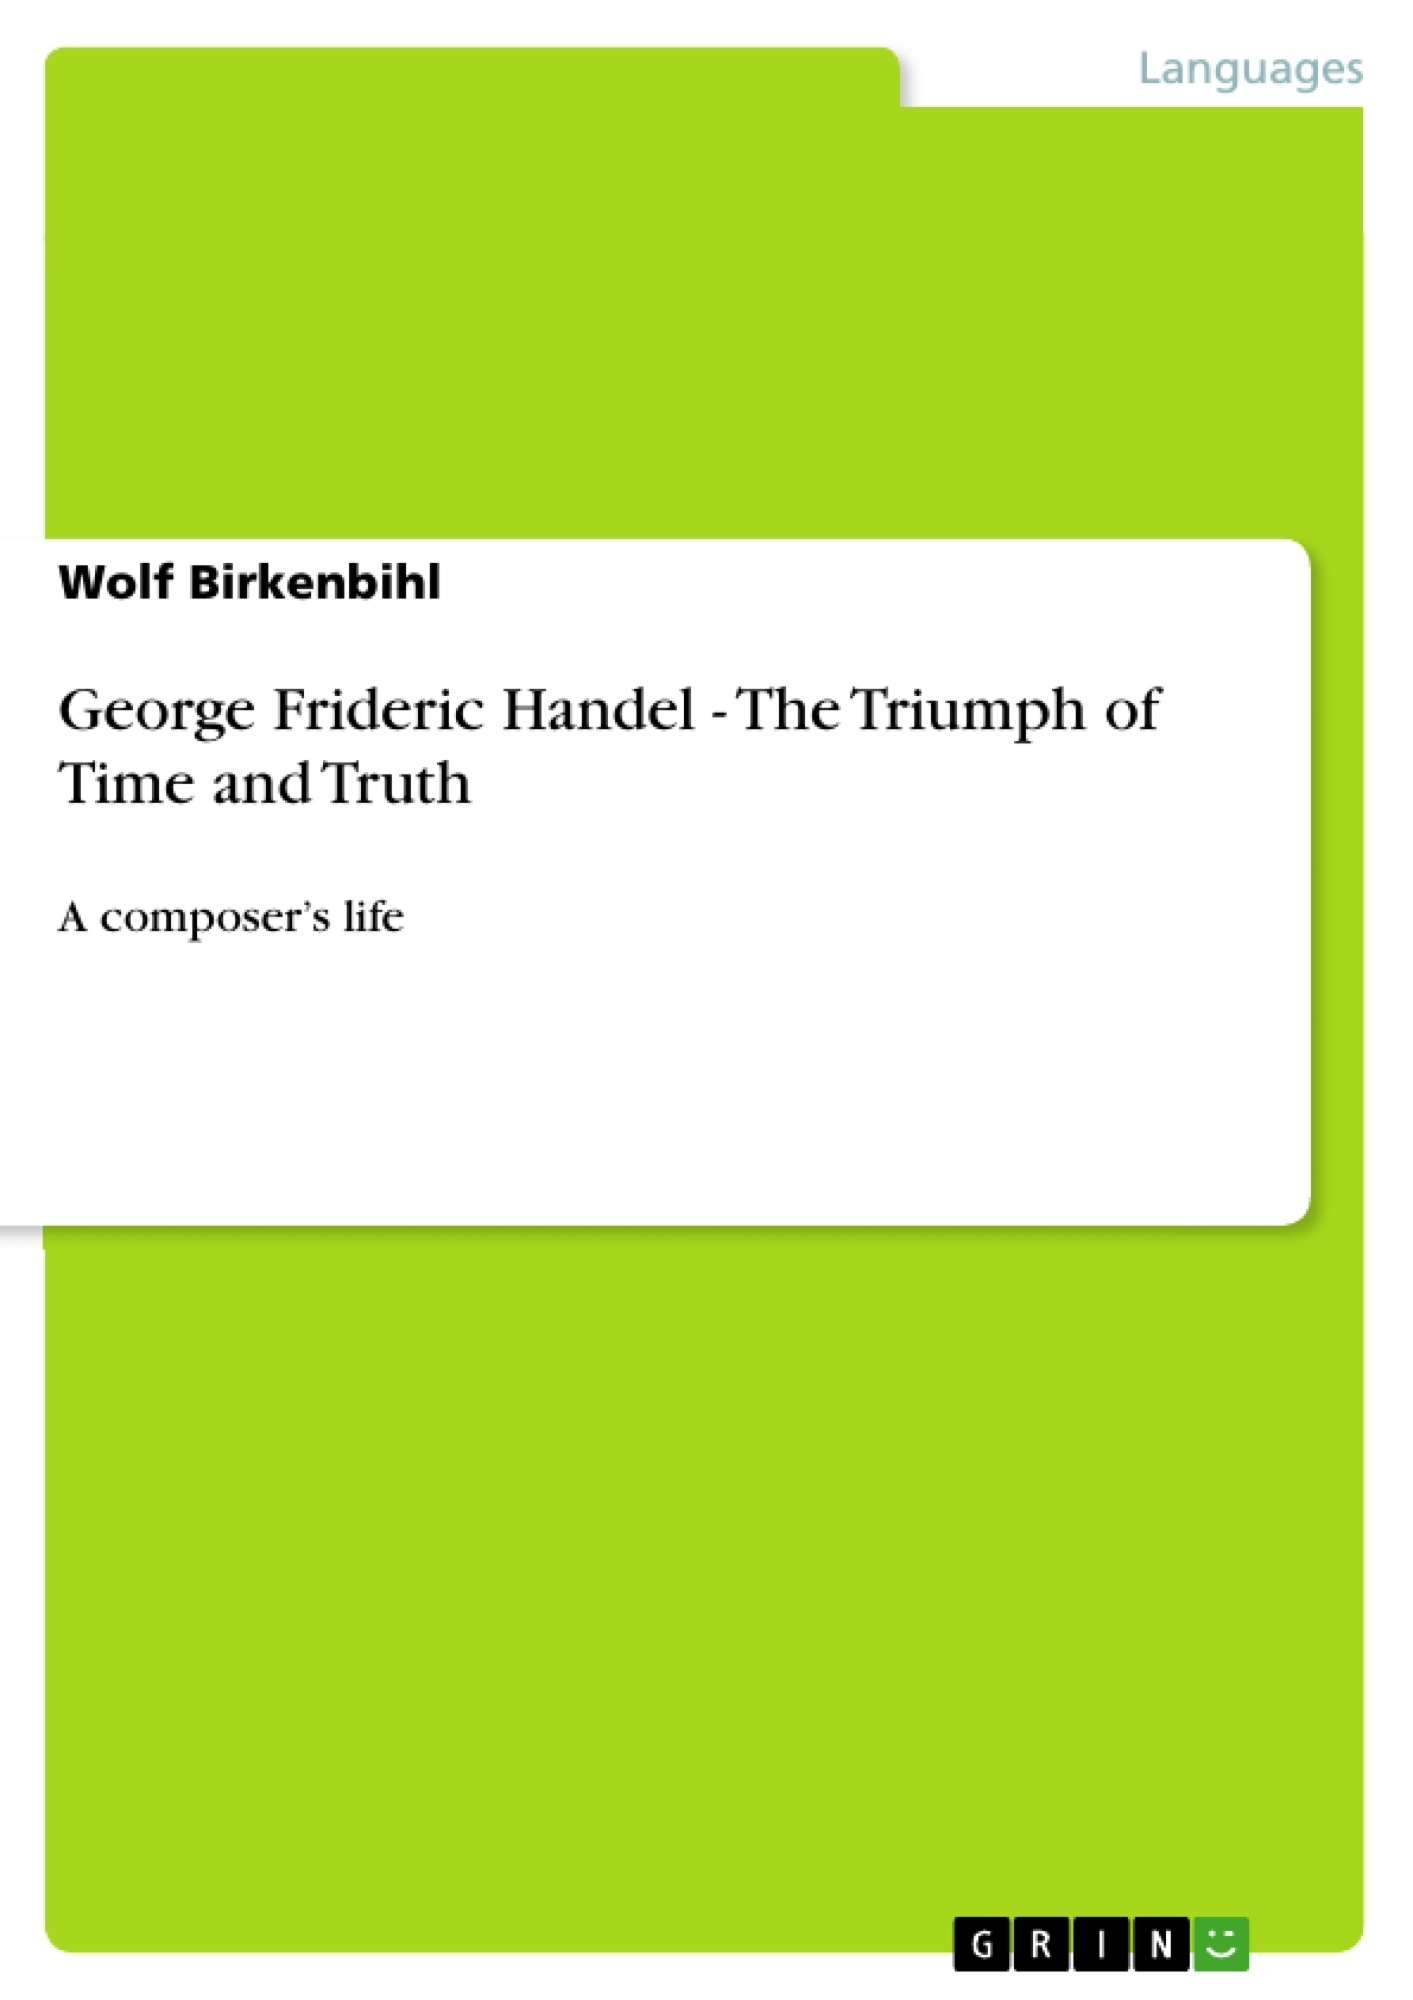 Title: George Frideric Handel - The Triumph of Time and Truth